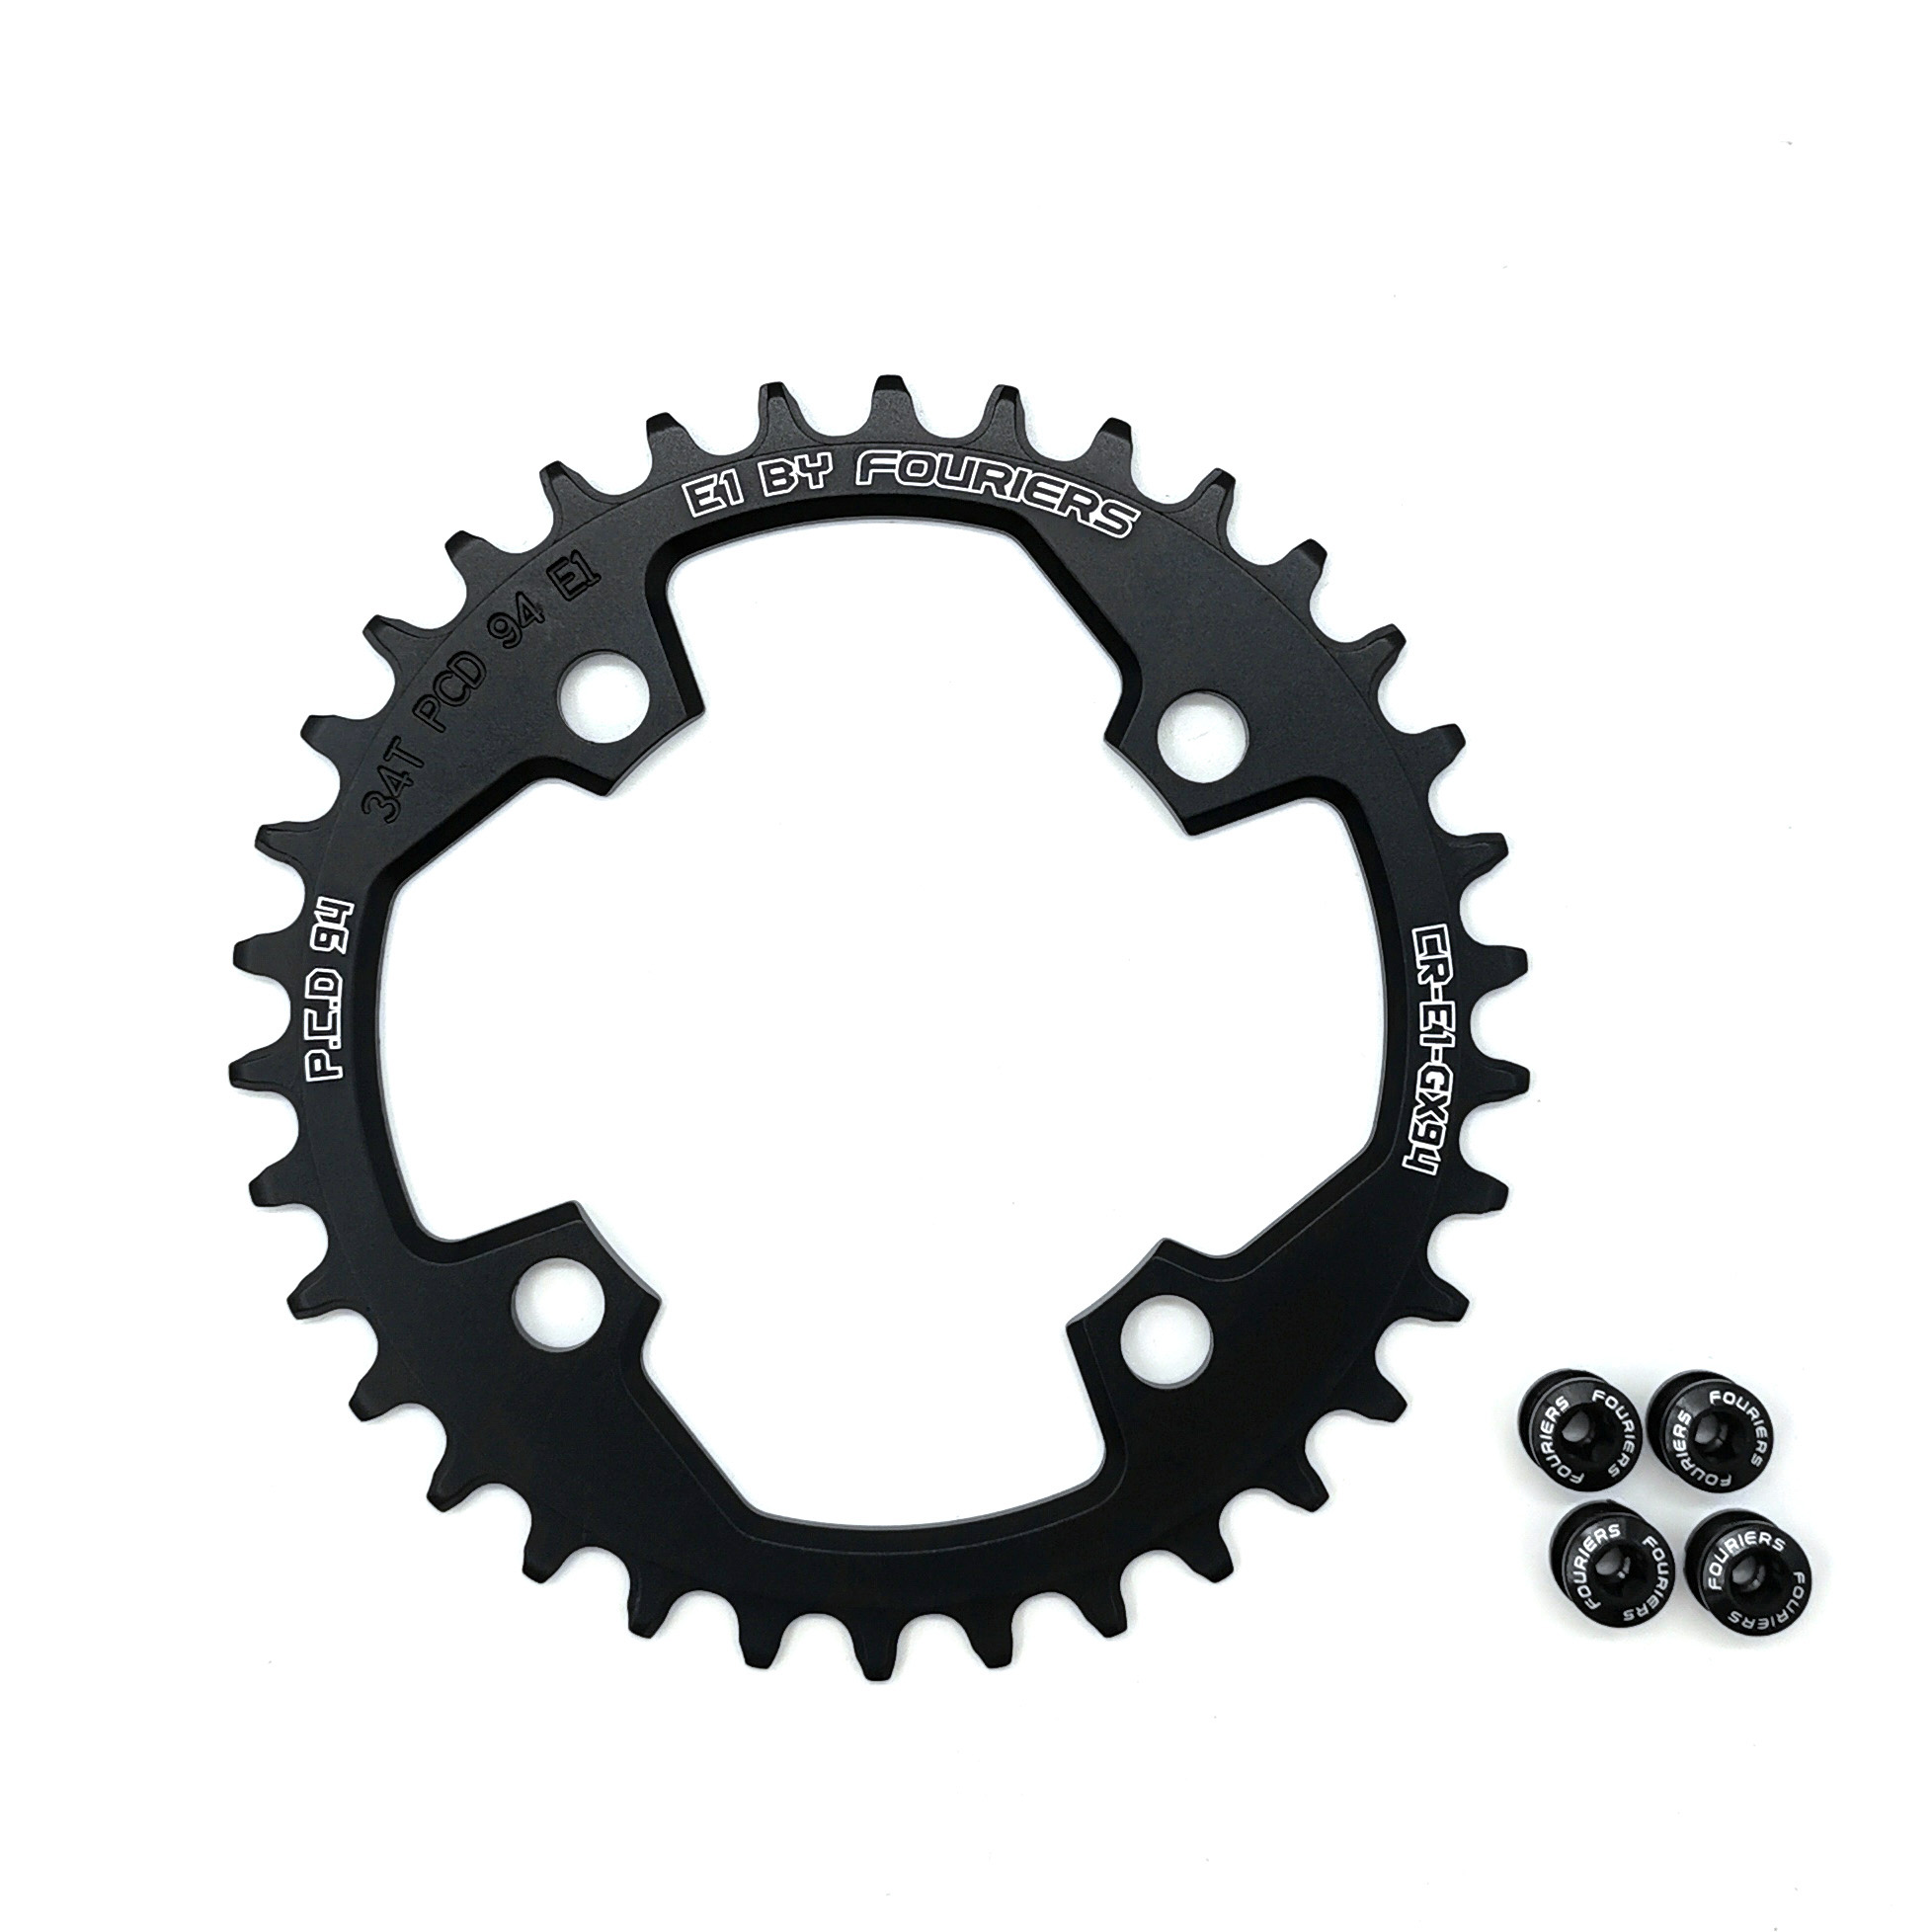 Fouriers BCD94 Mountain Bike Chainring Circle Narrow Wide <font><b>32T</b></font> 34T 36T 38T 40T For Sram GX94 Crank 1x System image